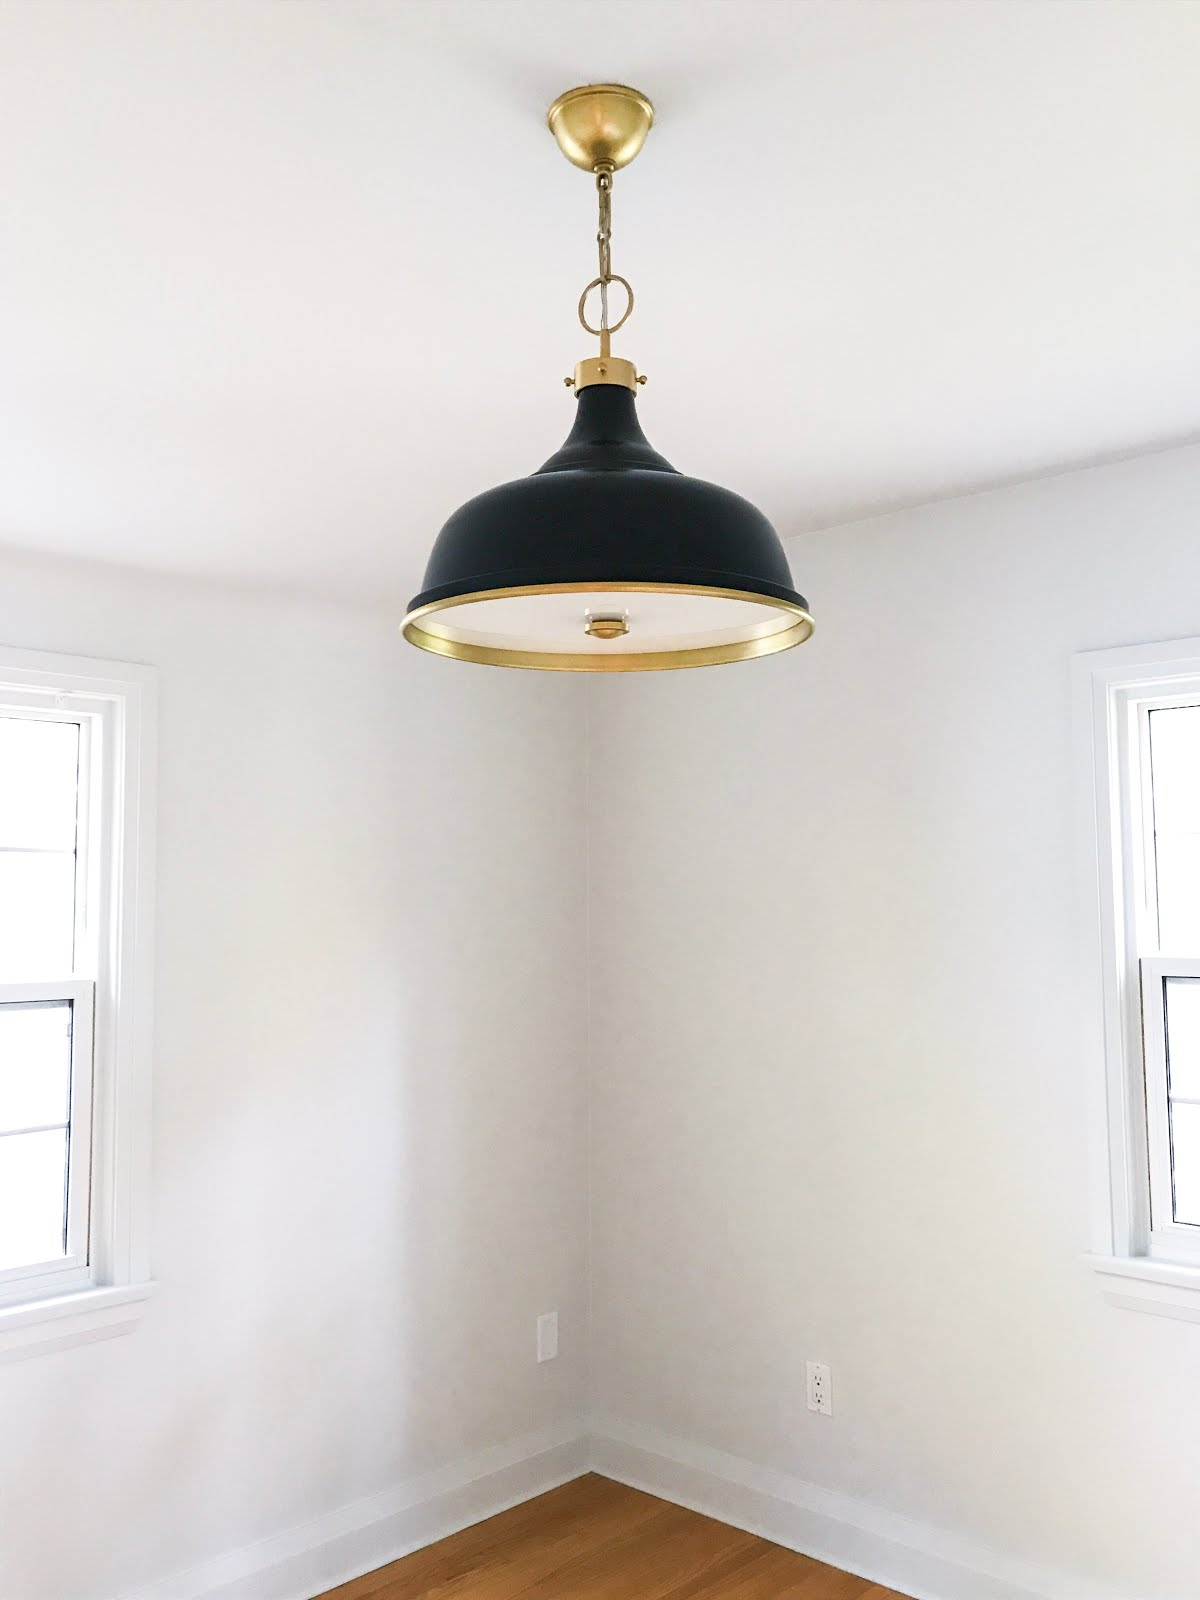 hudson valley lighting pendant, mark d sikes lighting, classic blue and brass large pendant